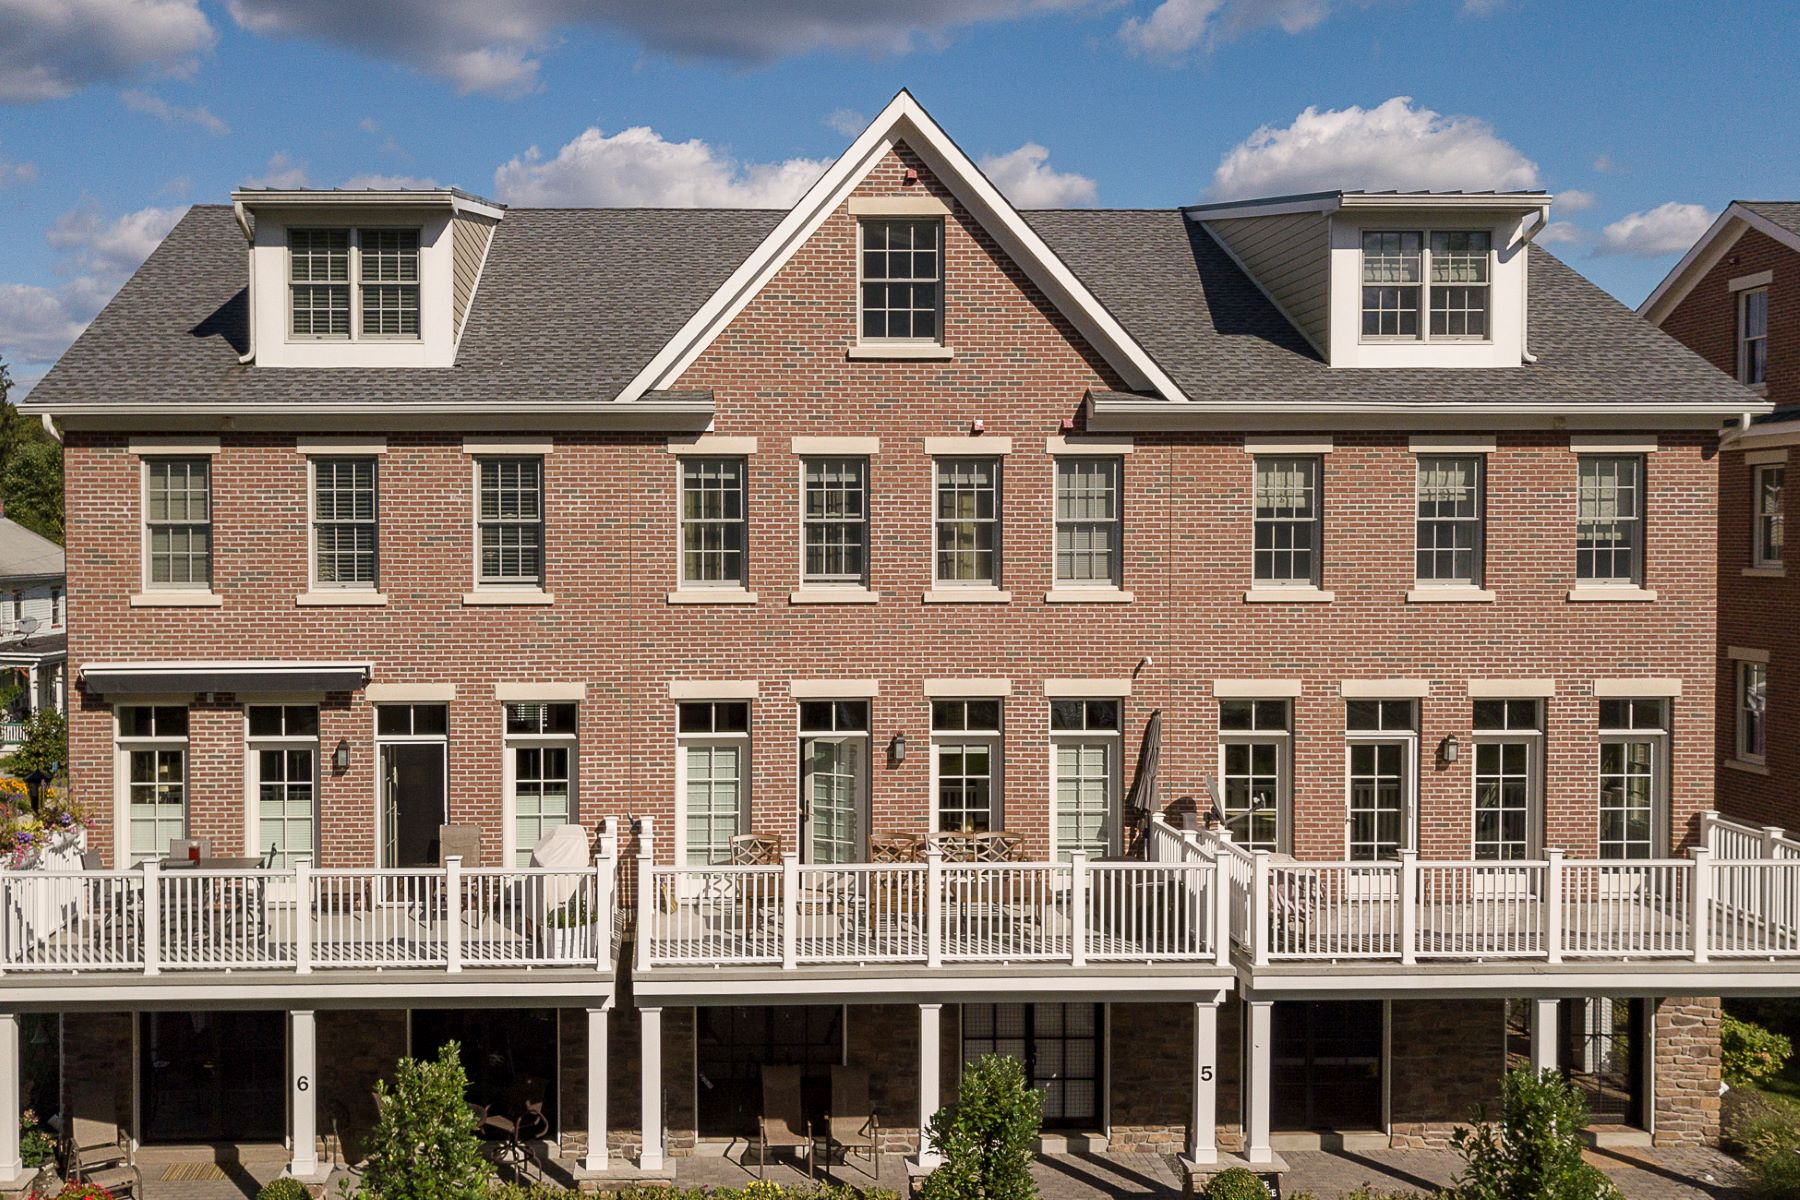 townhouses por un Venta en The Best of Both Worlds 3 River Mills Drive Frenchtown, Nueva Jersey 08825 Estados Unidos